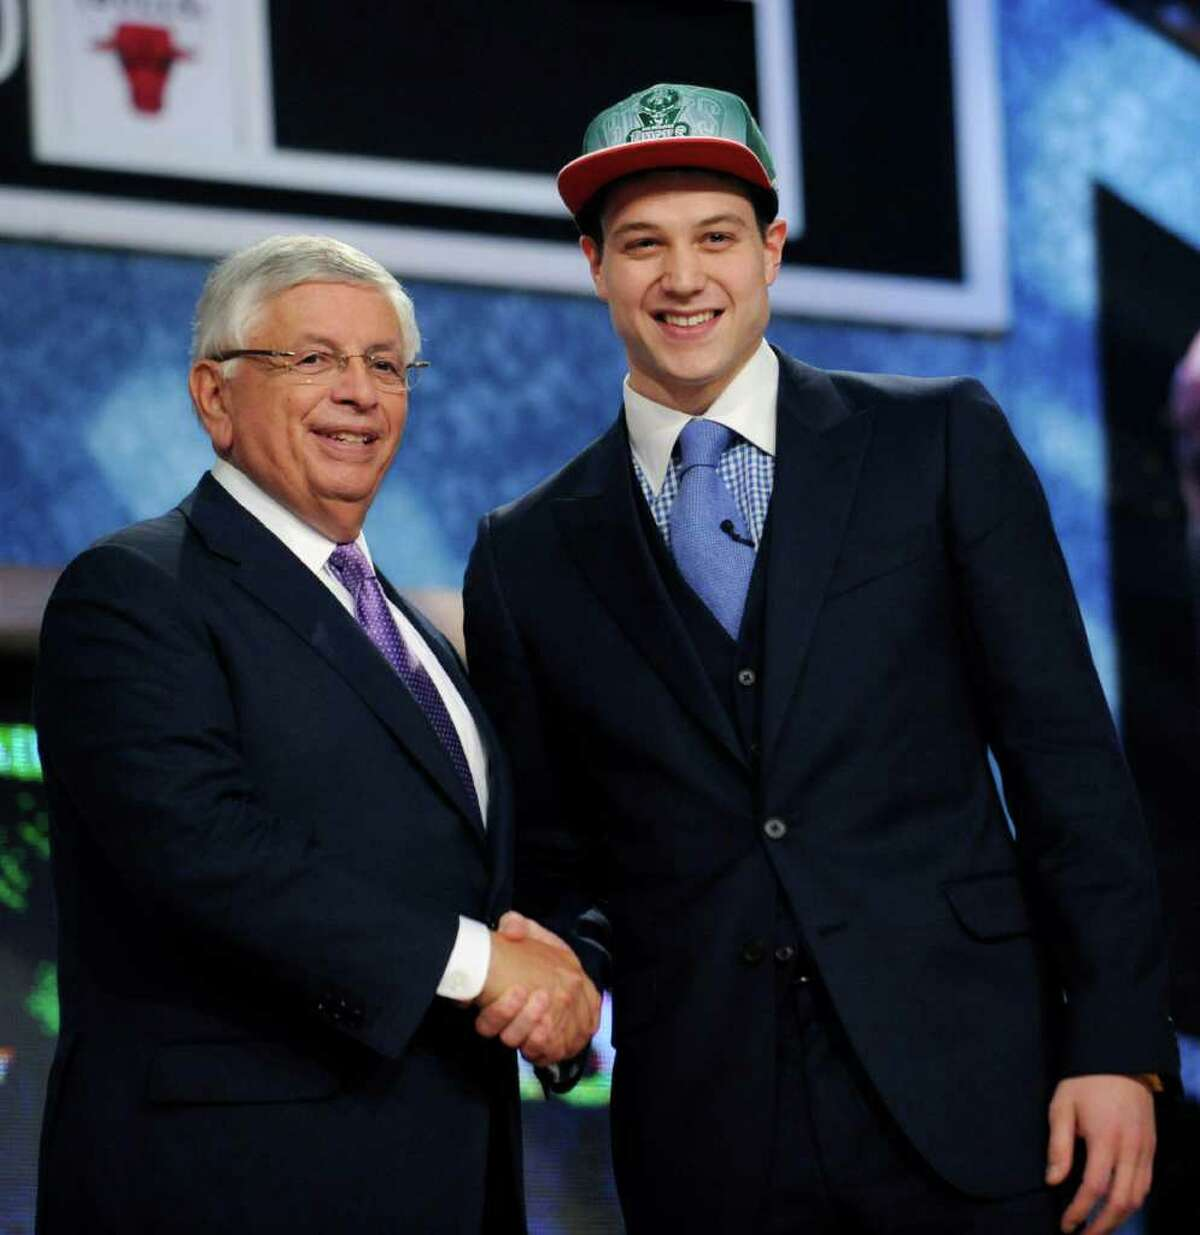 CORRECTS PHOTOGRAPHER - NBA Commissioner David Stern, left, poses with BYU's Jimmer Fredette, who was selected by the Milwaukee Bucks with the No. 10 pick in the NBA basketball draft Thursday, June, 23, 2011, in Newark, N.J.